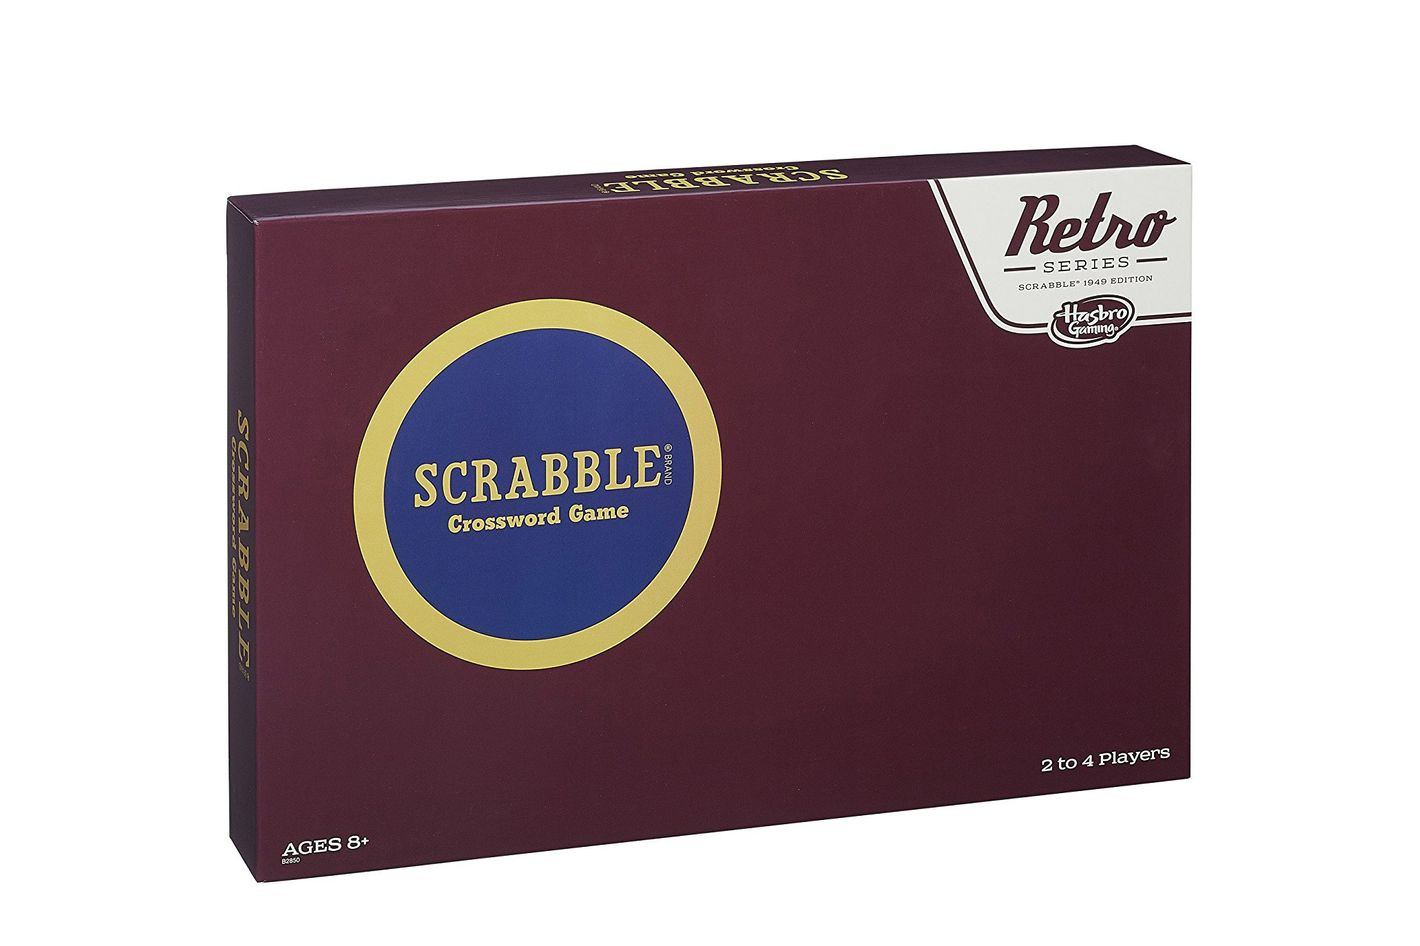 Scrabble: 1949 Retro Series Edition